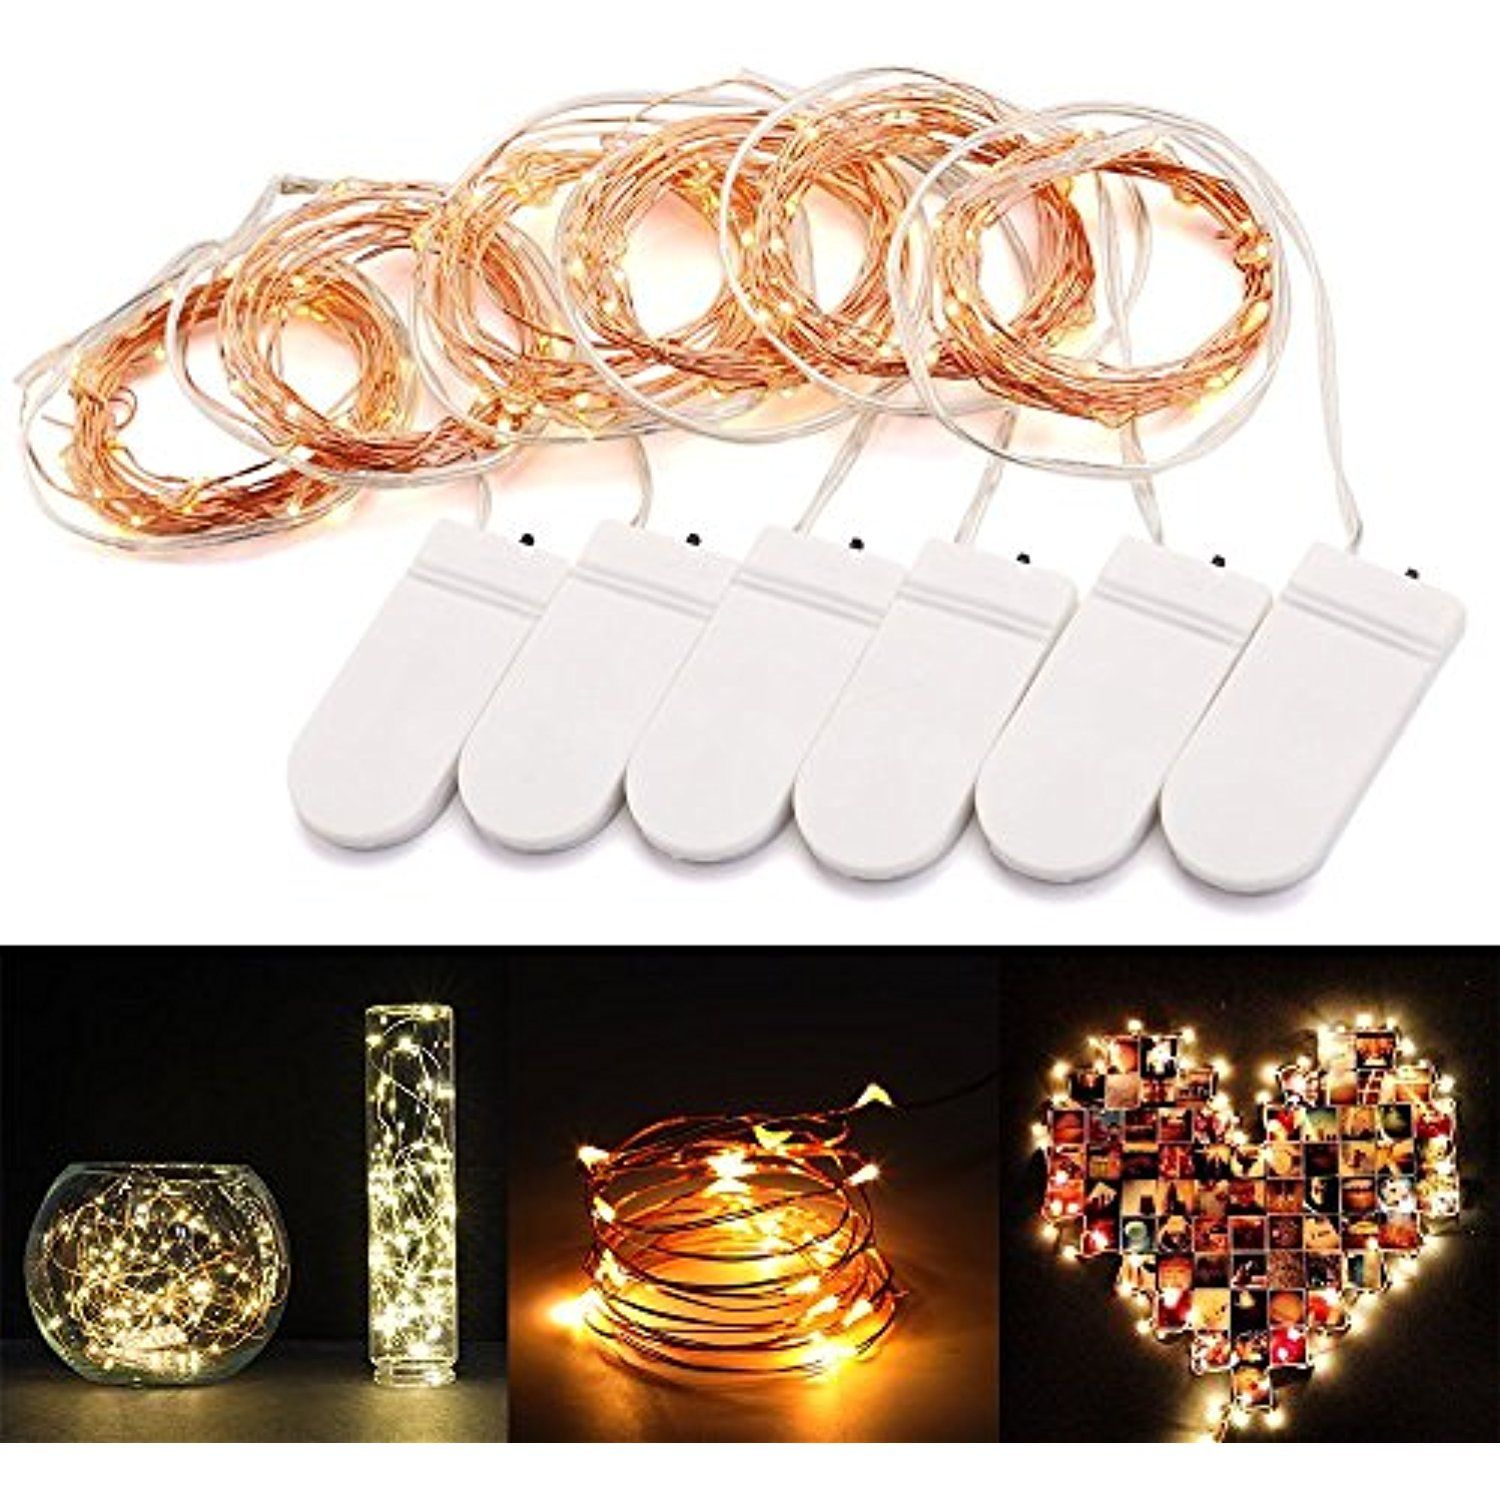 AGM 6pcs LED Fairy String Lights Warm White Battery Operated 6.6ft ...